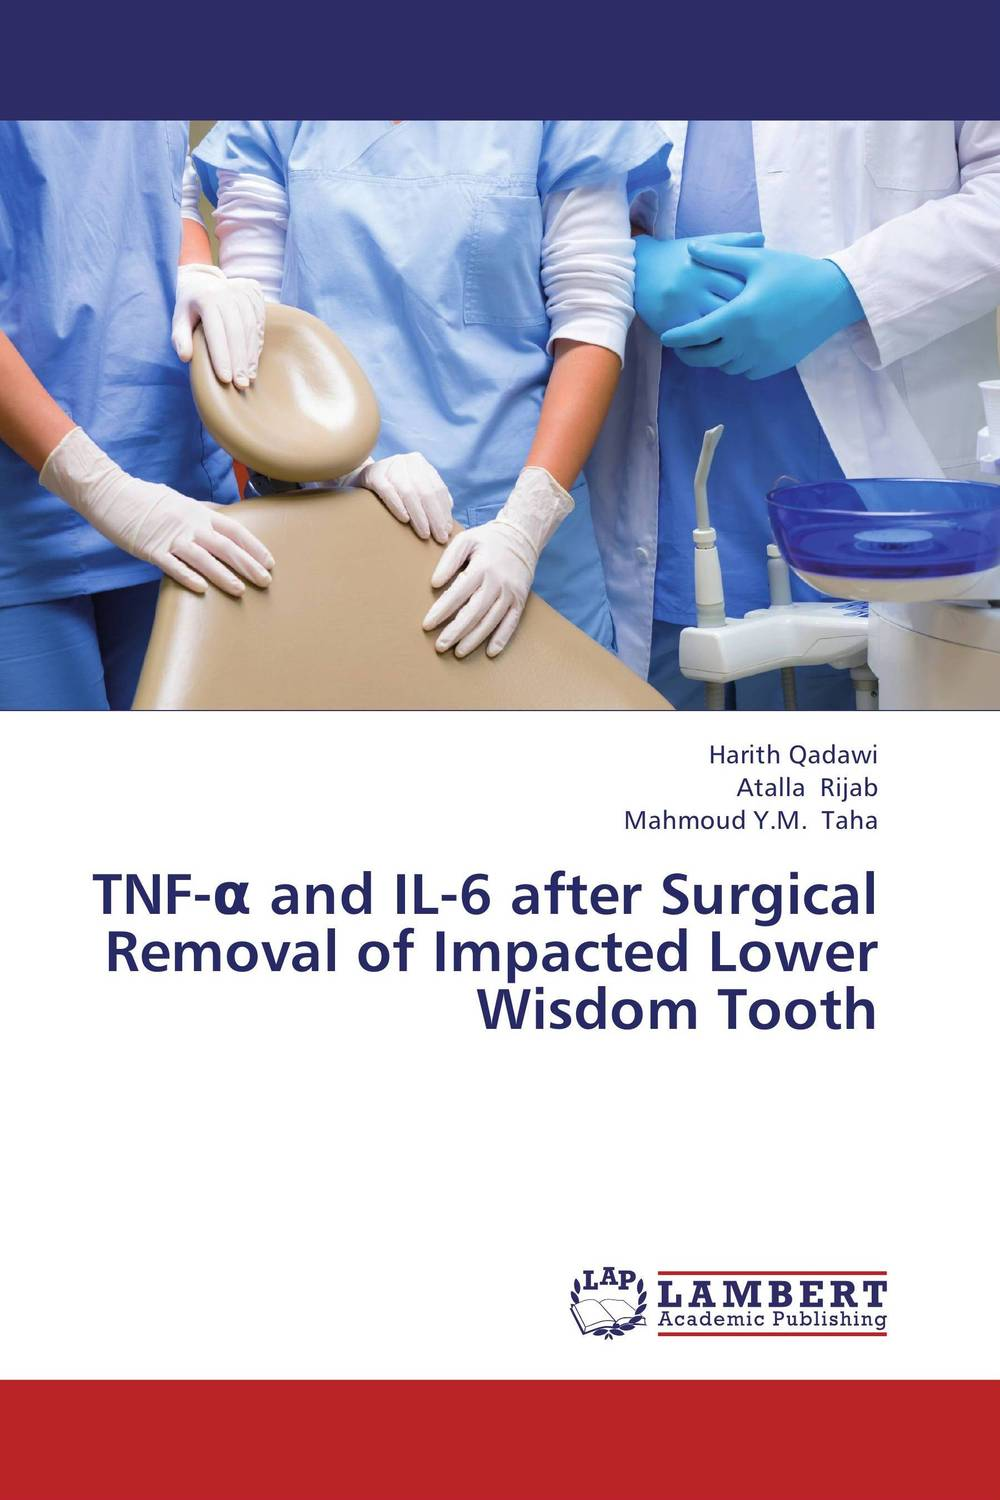 TNF-? and IL-6 after Surgical Removal of Impacted Lower Wisdom Tooth preventing pocket formation after impacted third molar surgery